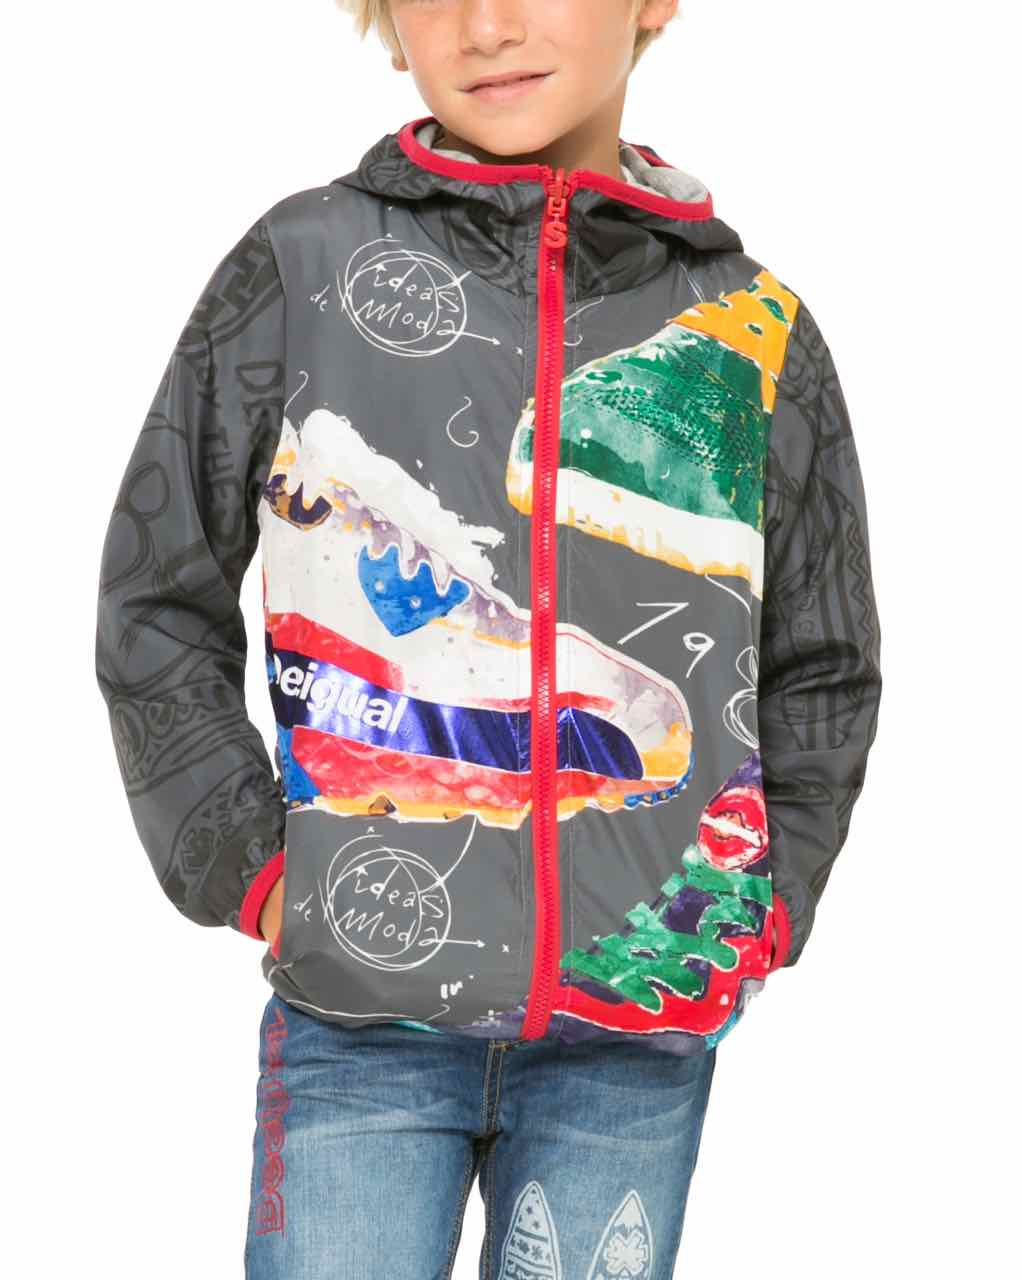 61E36C3_2000 Desigual Boy Jacket Blue